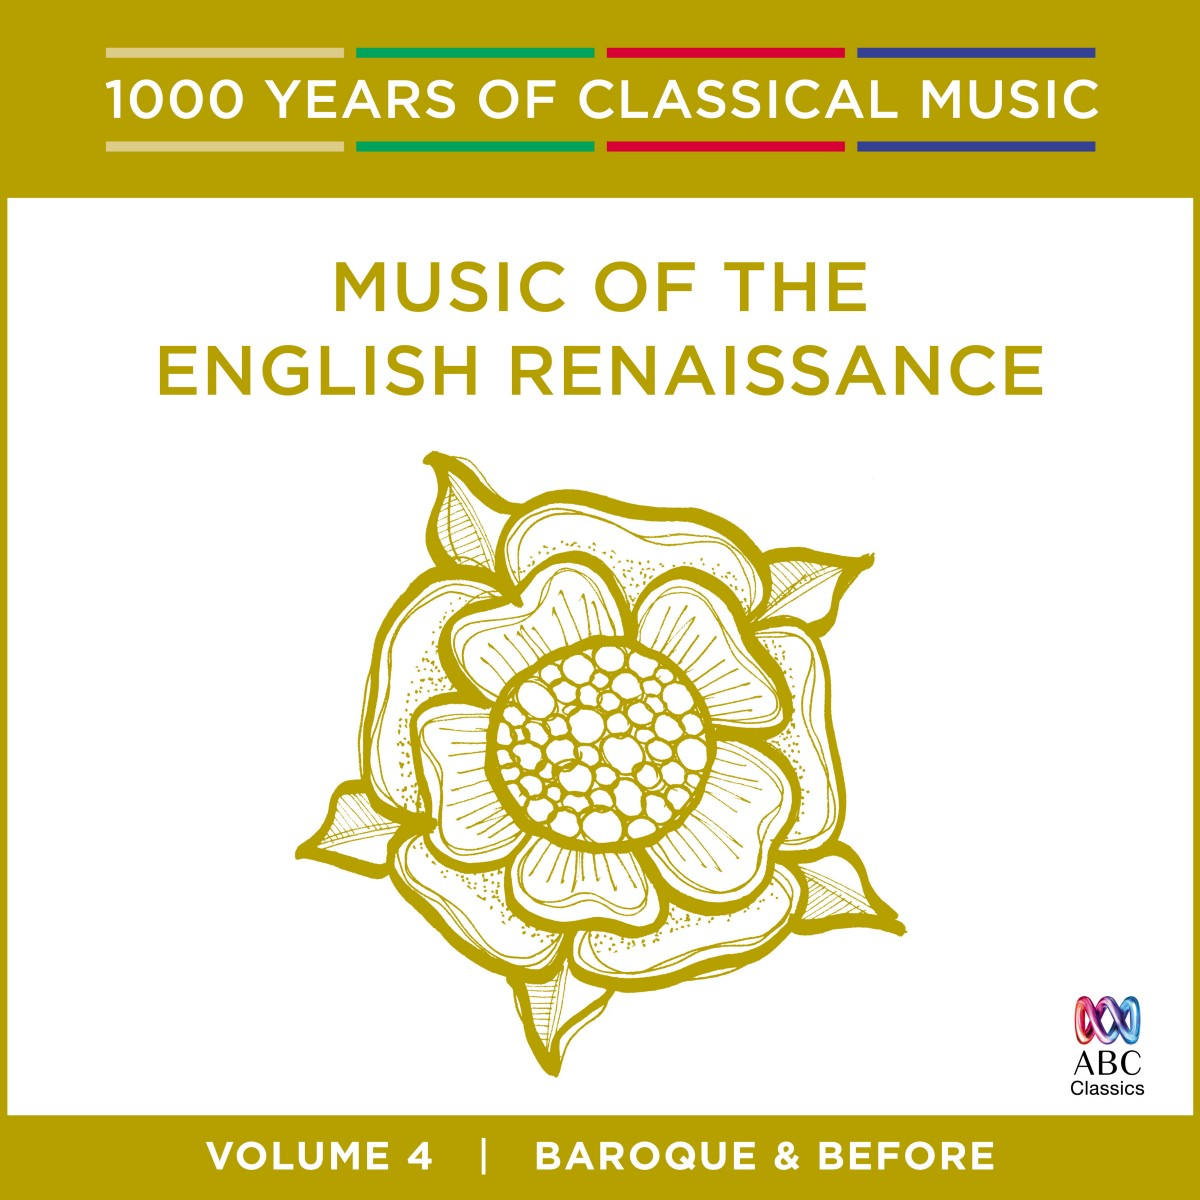 Music of the English Renaissance - 1000 Years of Classical